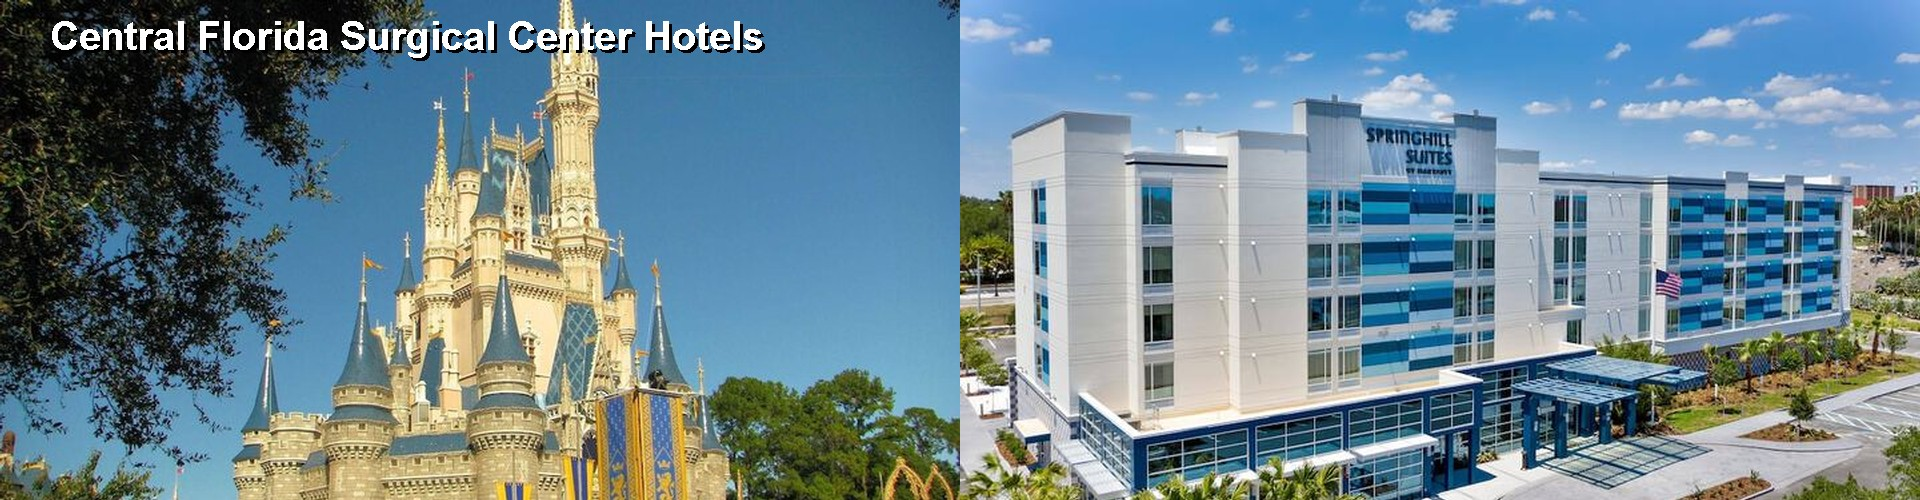 5 Best Hotels near Central Florida Surgical Center